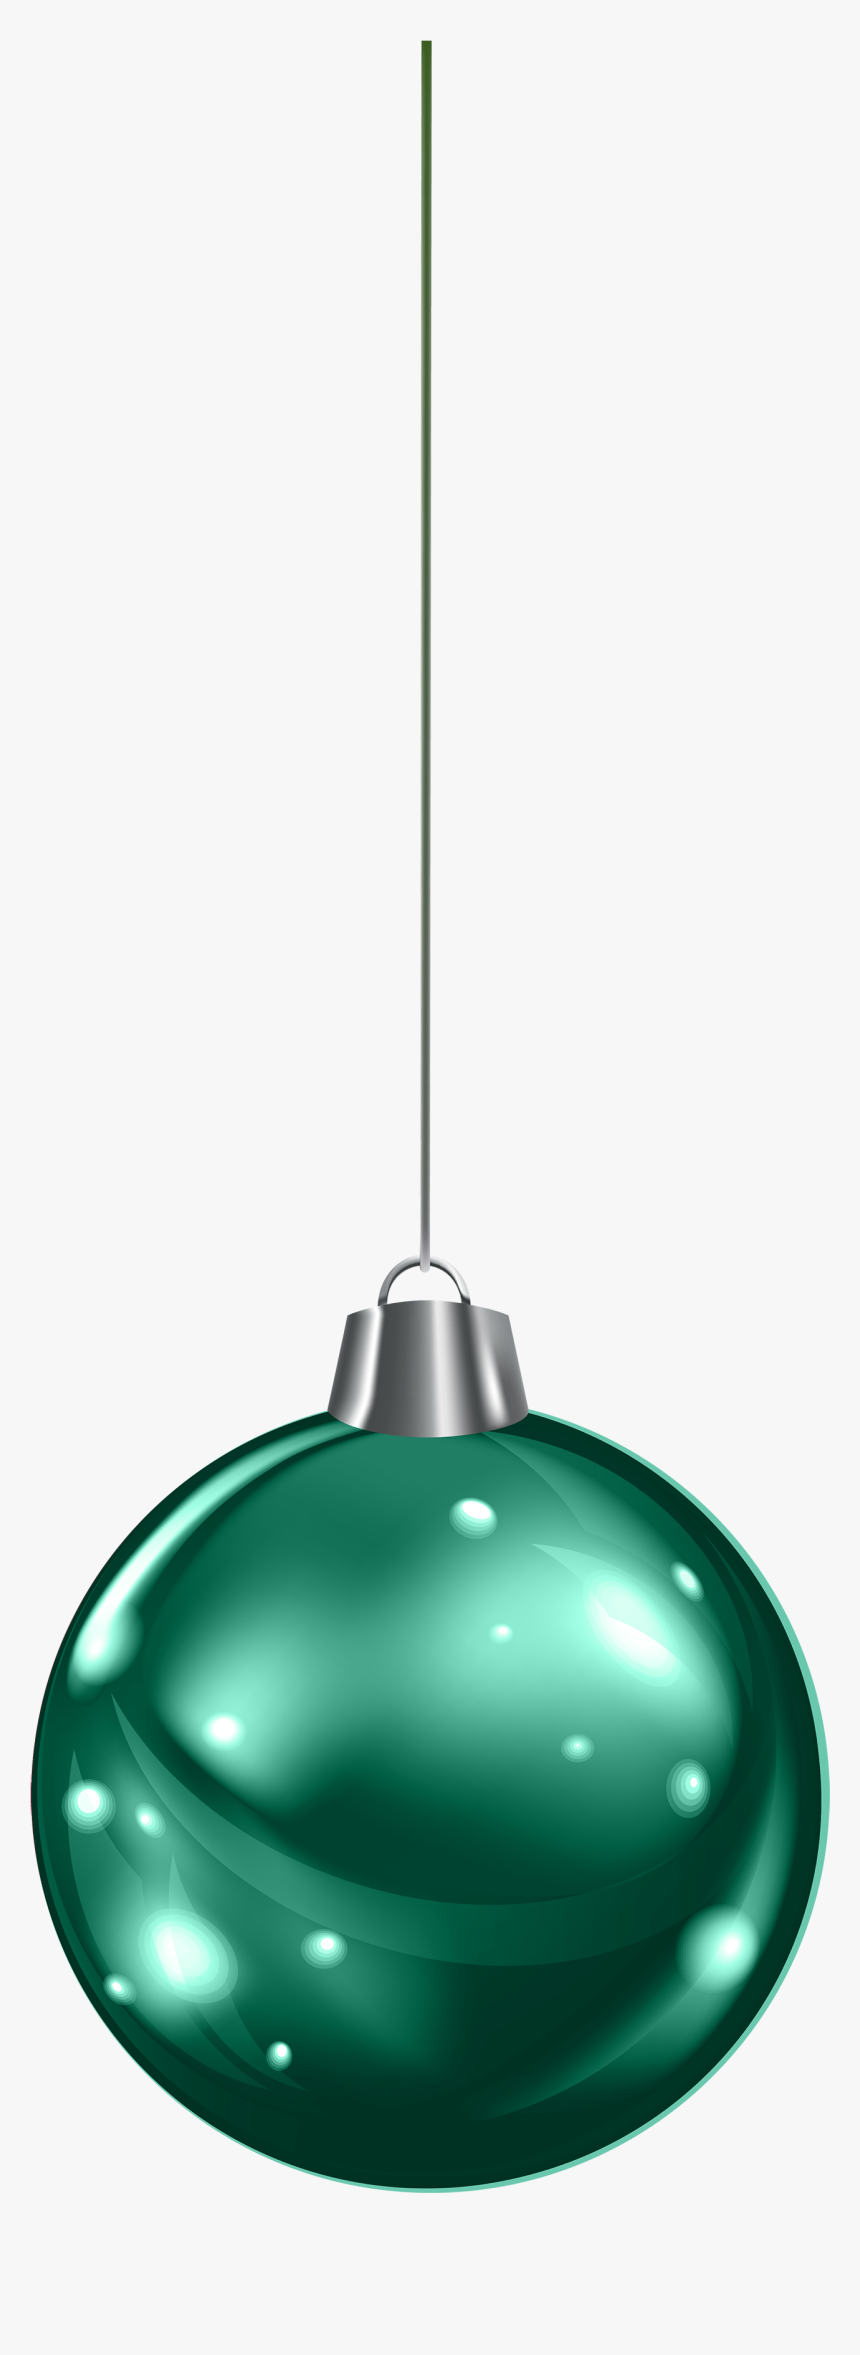 Hanging Green Christmas Ball Png Clipart - Green Hanging Christmas Ornament, Transparent Png, Free Download